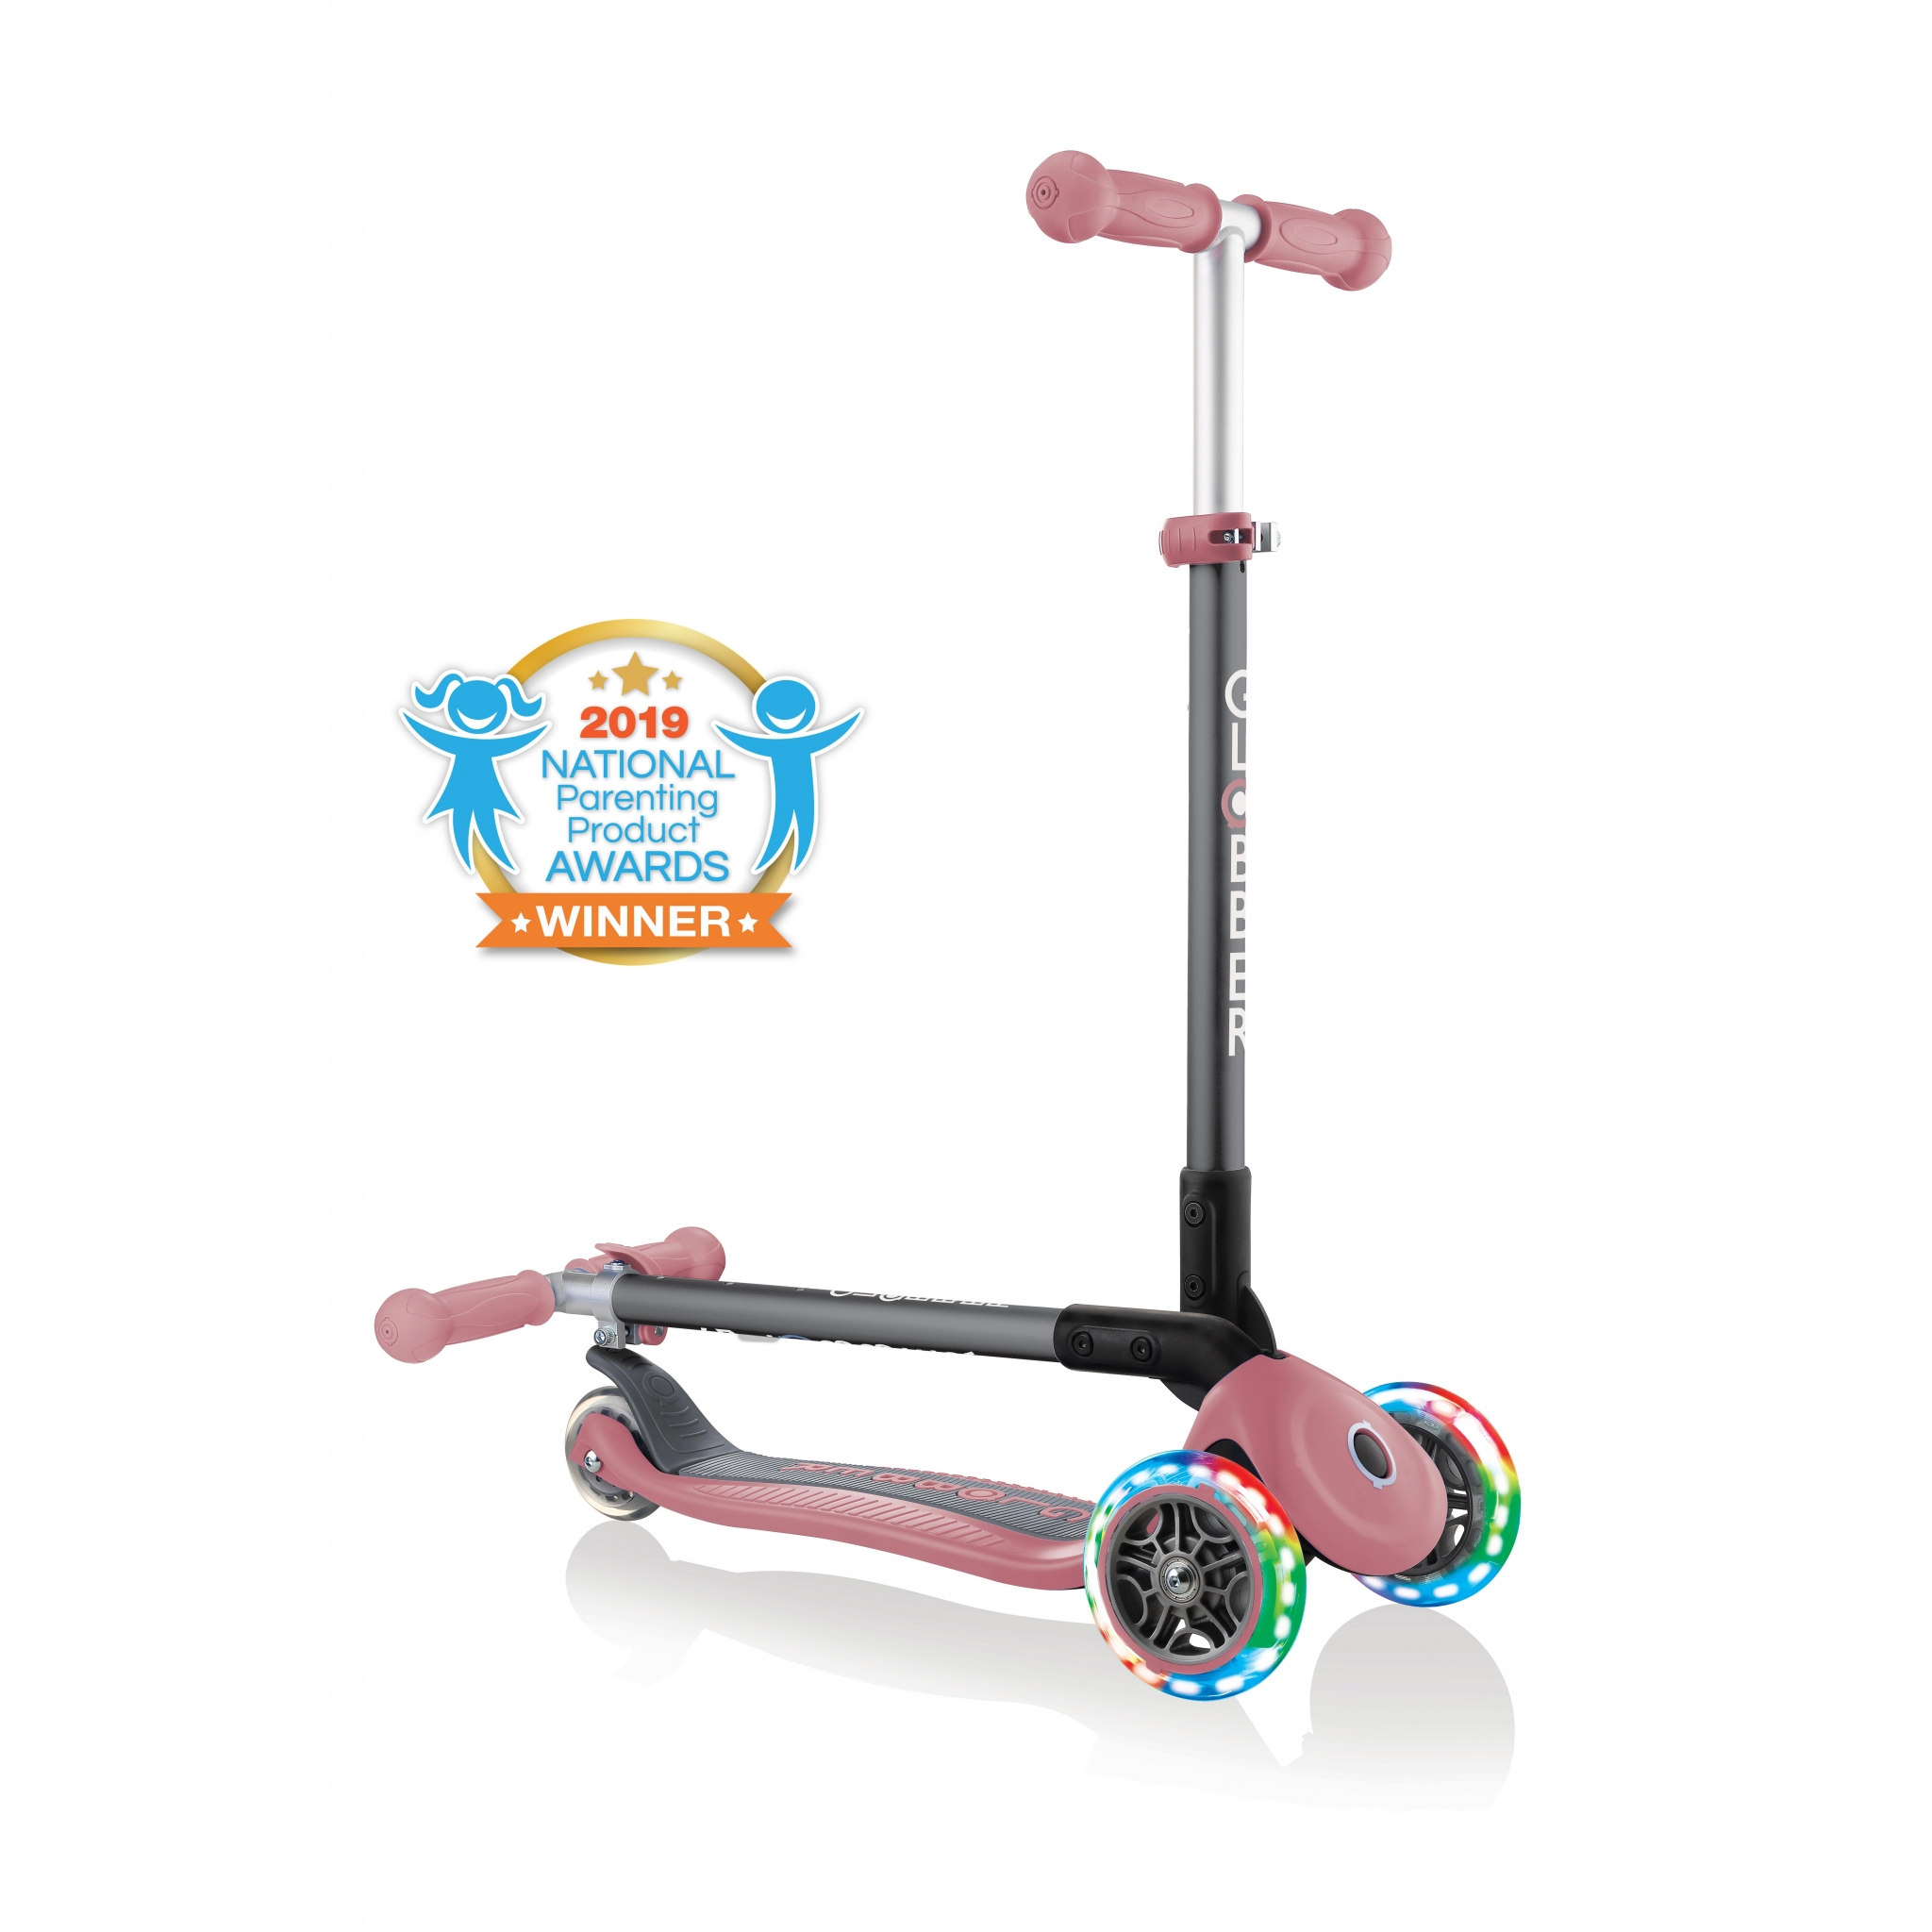 PRIMO-FOLDABLE-LIGHTS-3-wheel-fold-up-scooter-for-kids-pastel-deep-pink 0